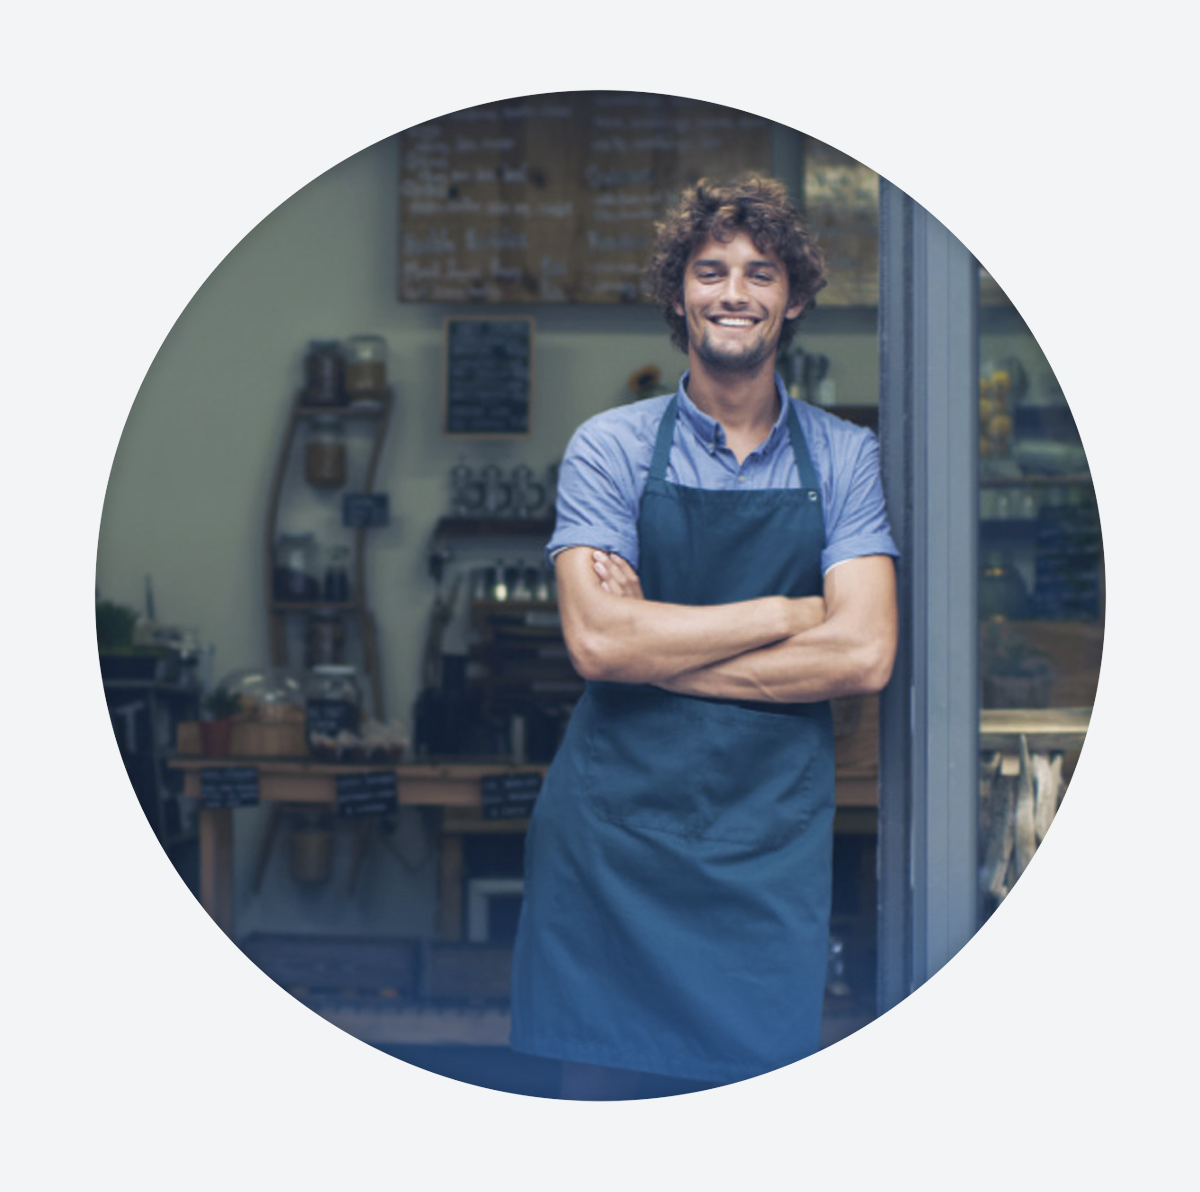 Creze - Creze is a tech-enabled lender to small and medium-sized businesses.Founder:Diego Creel, Gonzalo Cegarra & David LaskBased in:Mexico City, Mexico